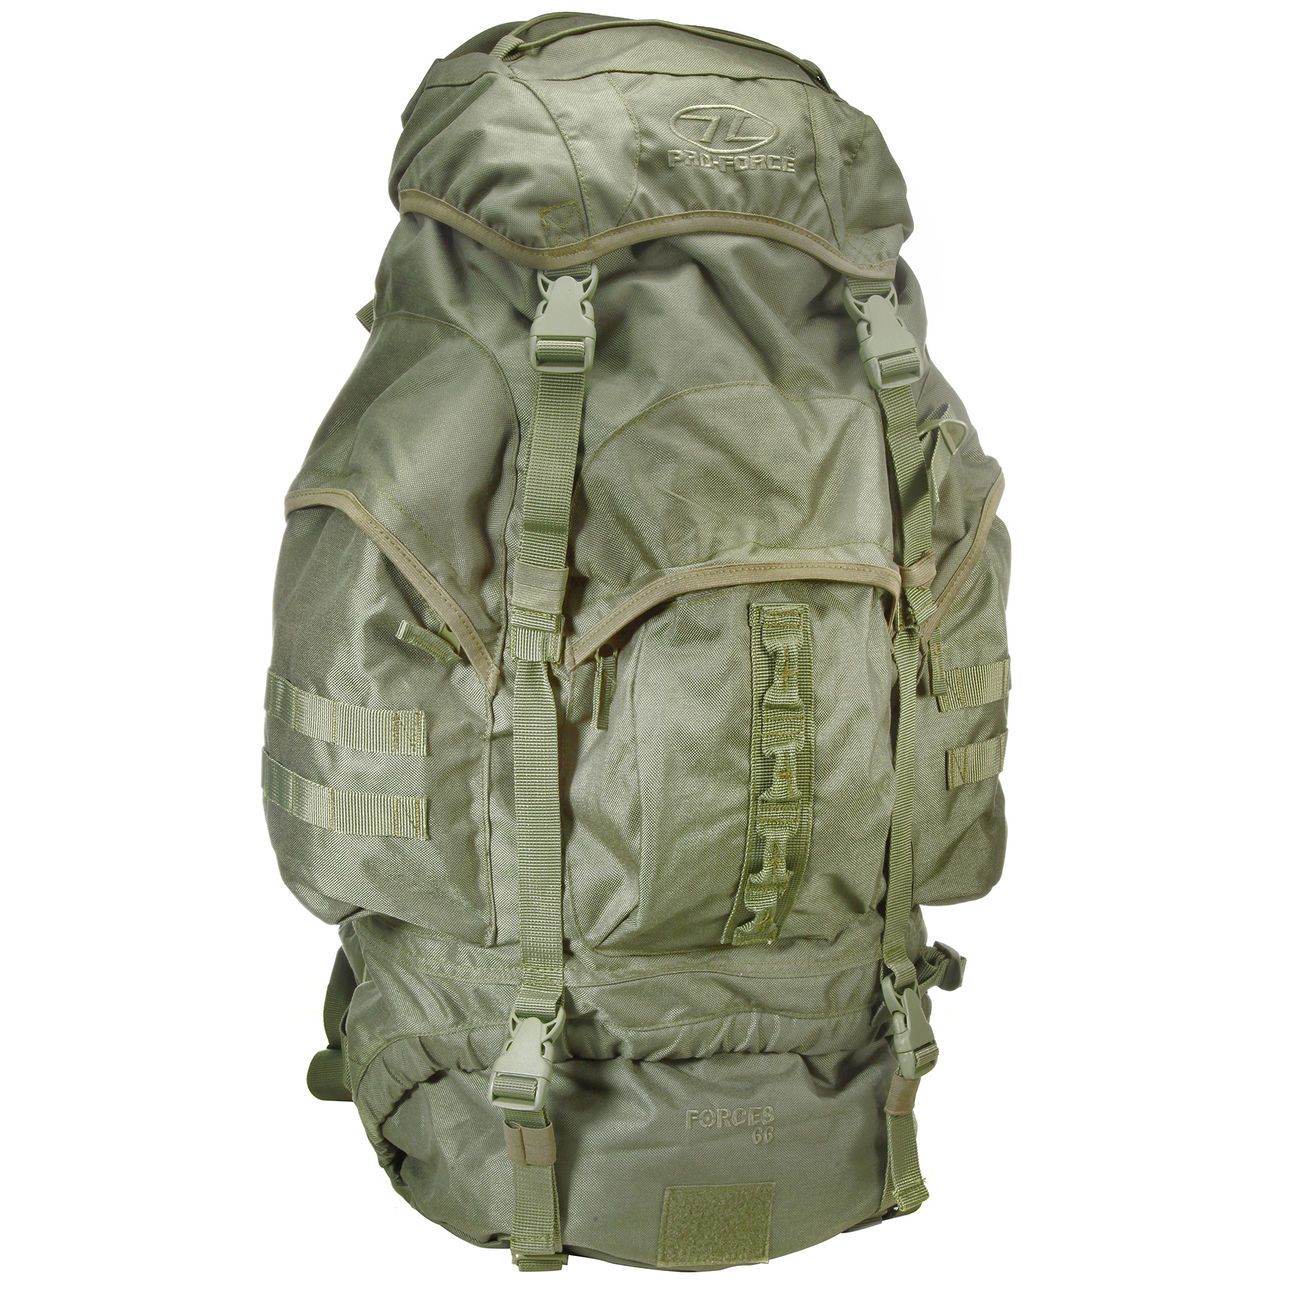 Highlander Rucksack Modell New Forces 66 Liter oliv 1